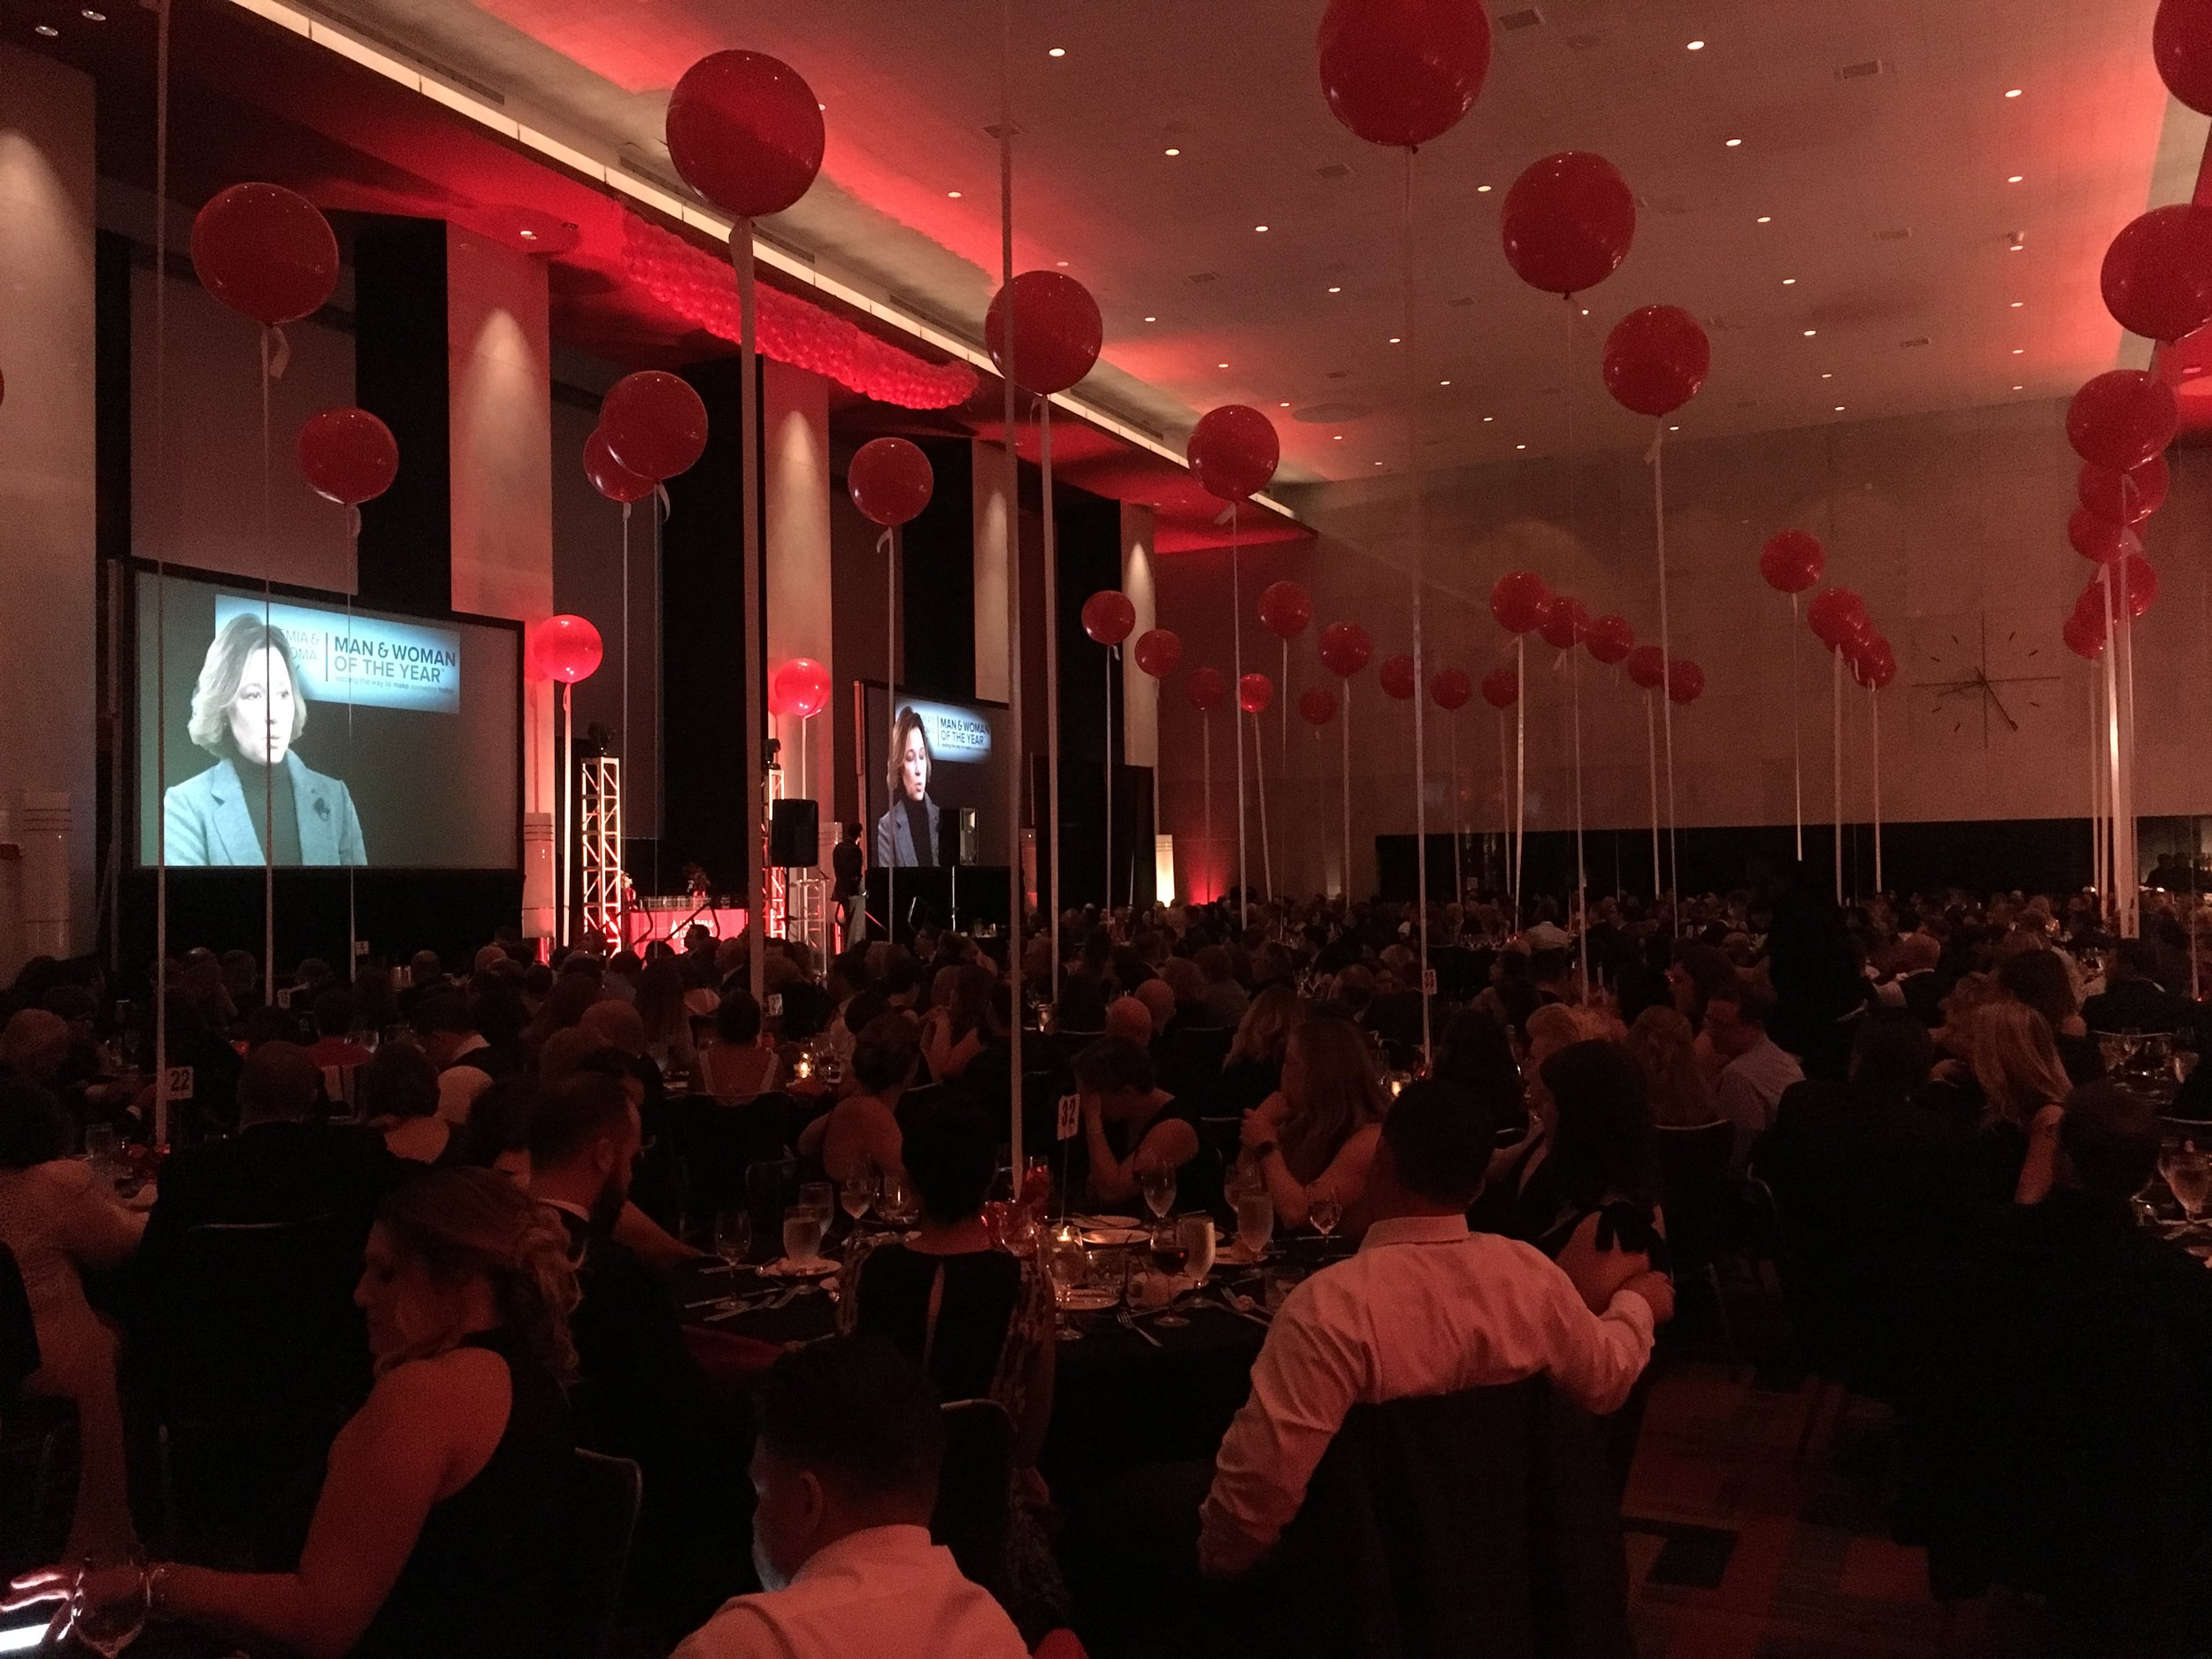 2018 Leukemia & Lymphoma Society's Man & Woman of the Year Event